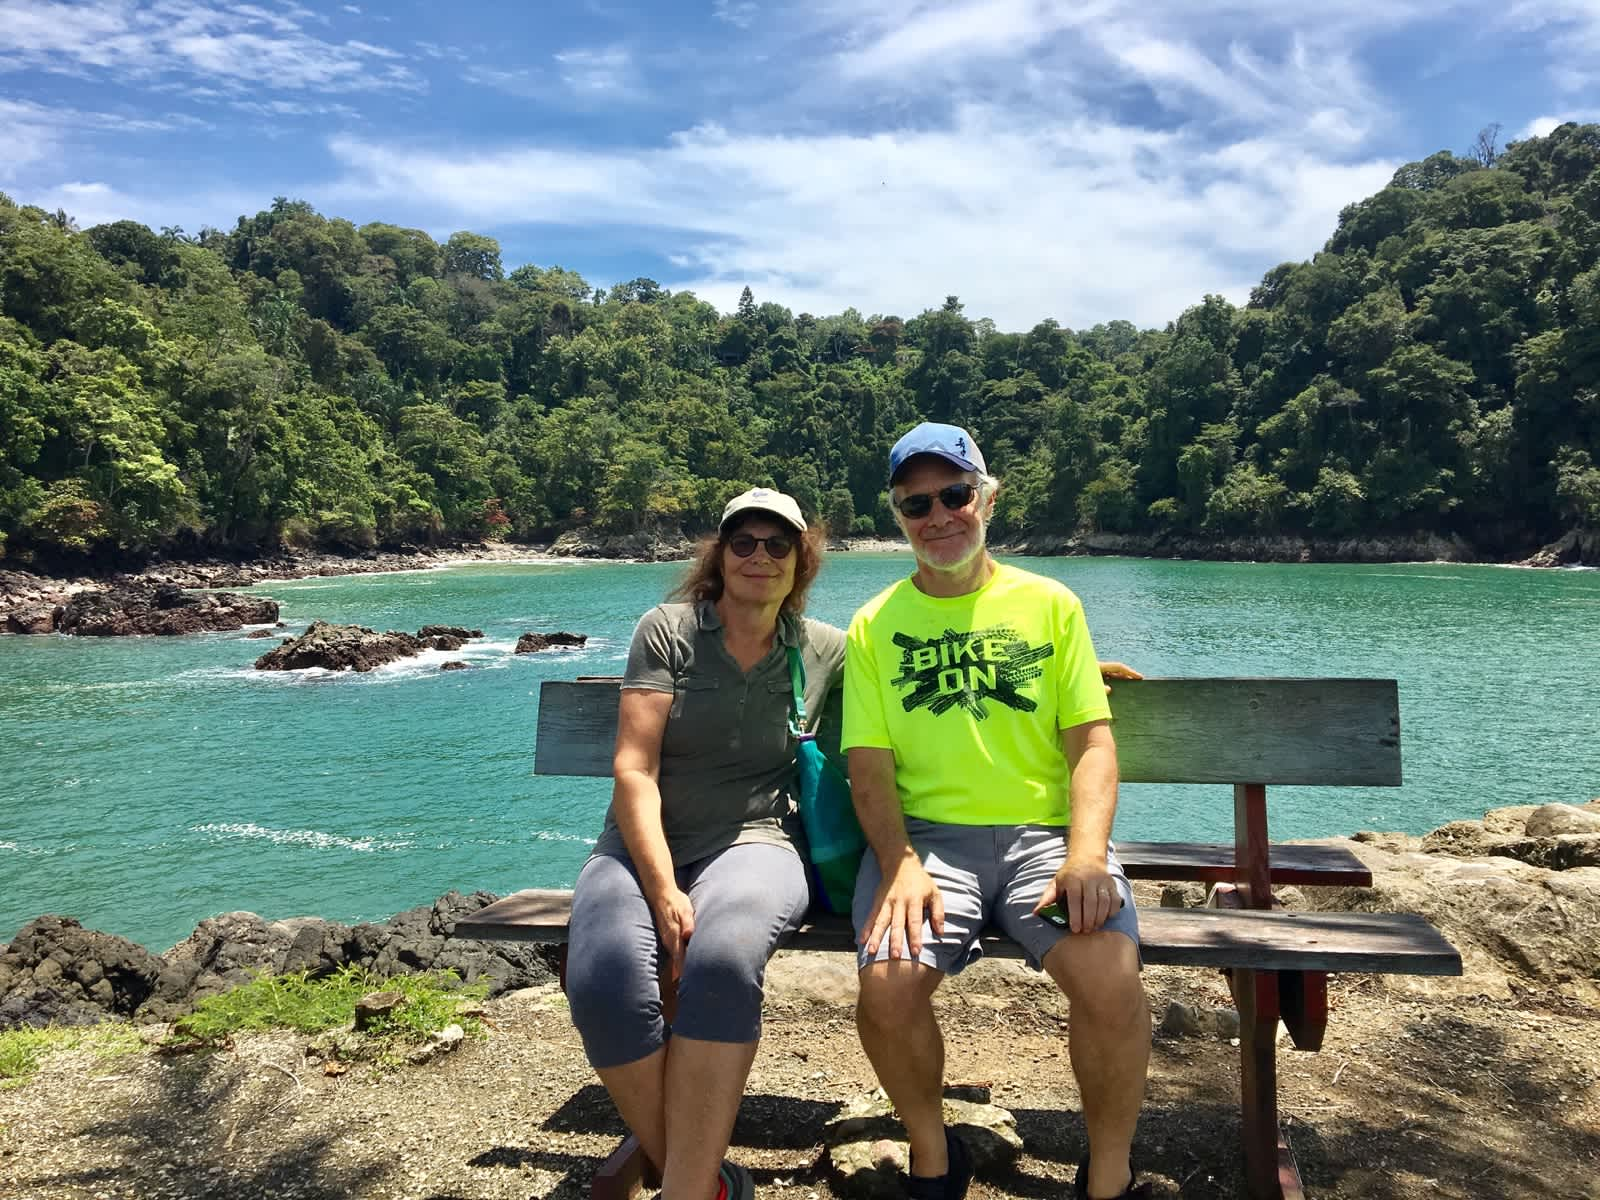 Ken & Hilary from North Amherst, Massachusetts, United States